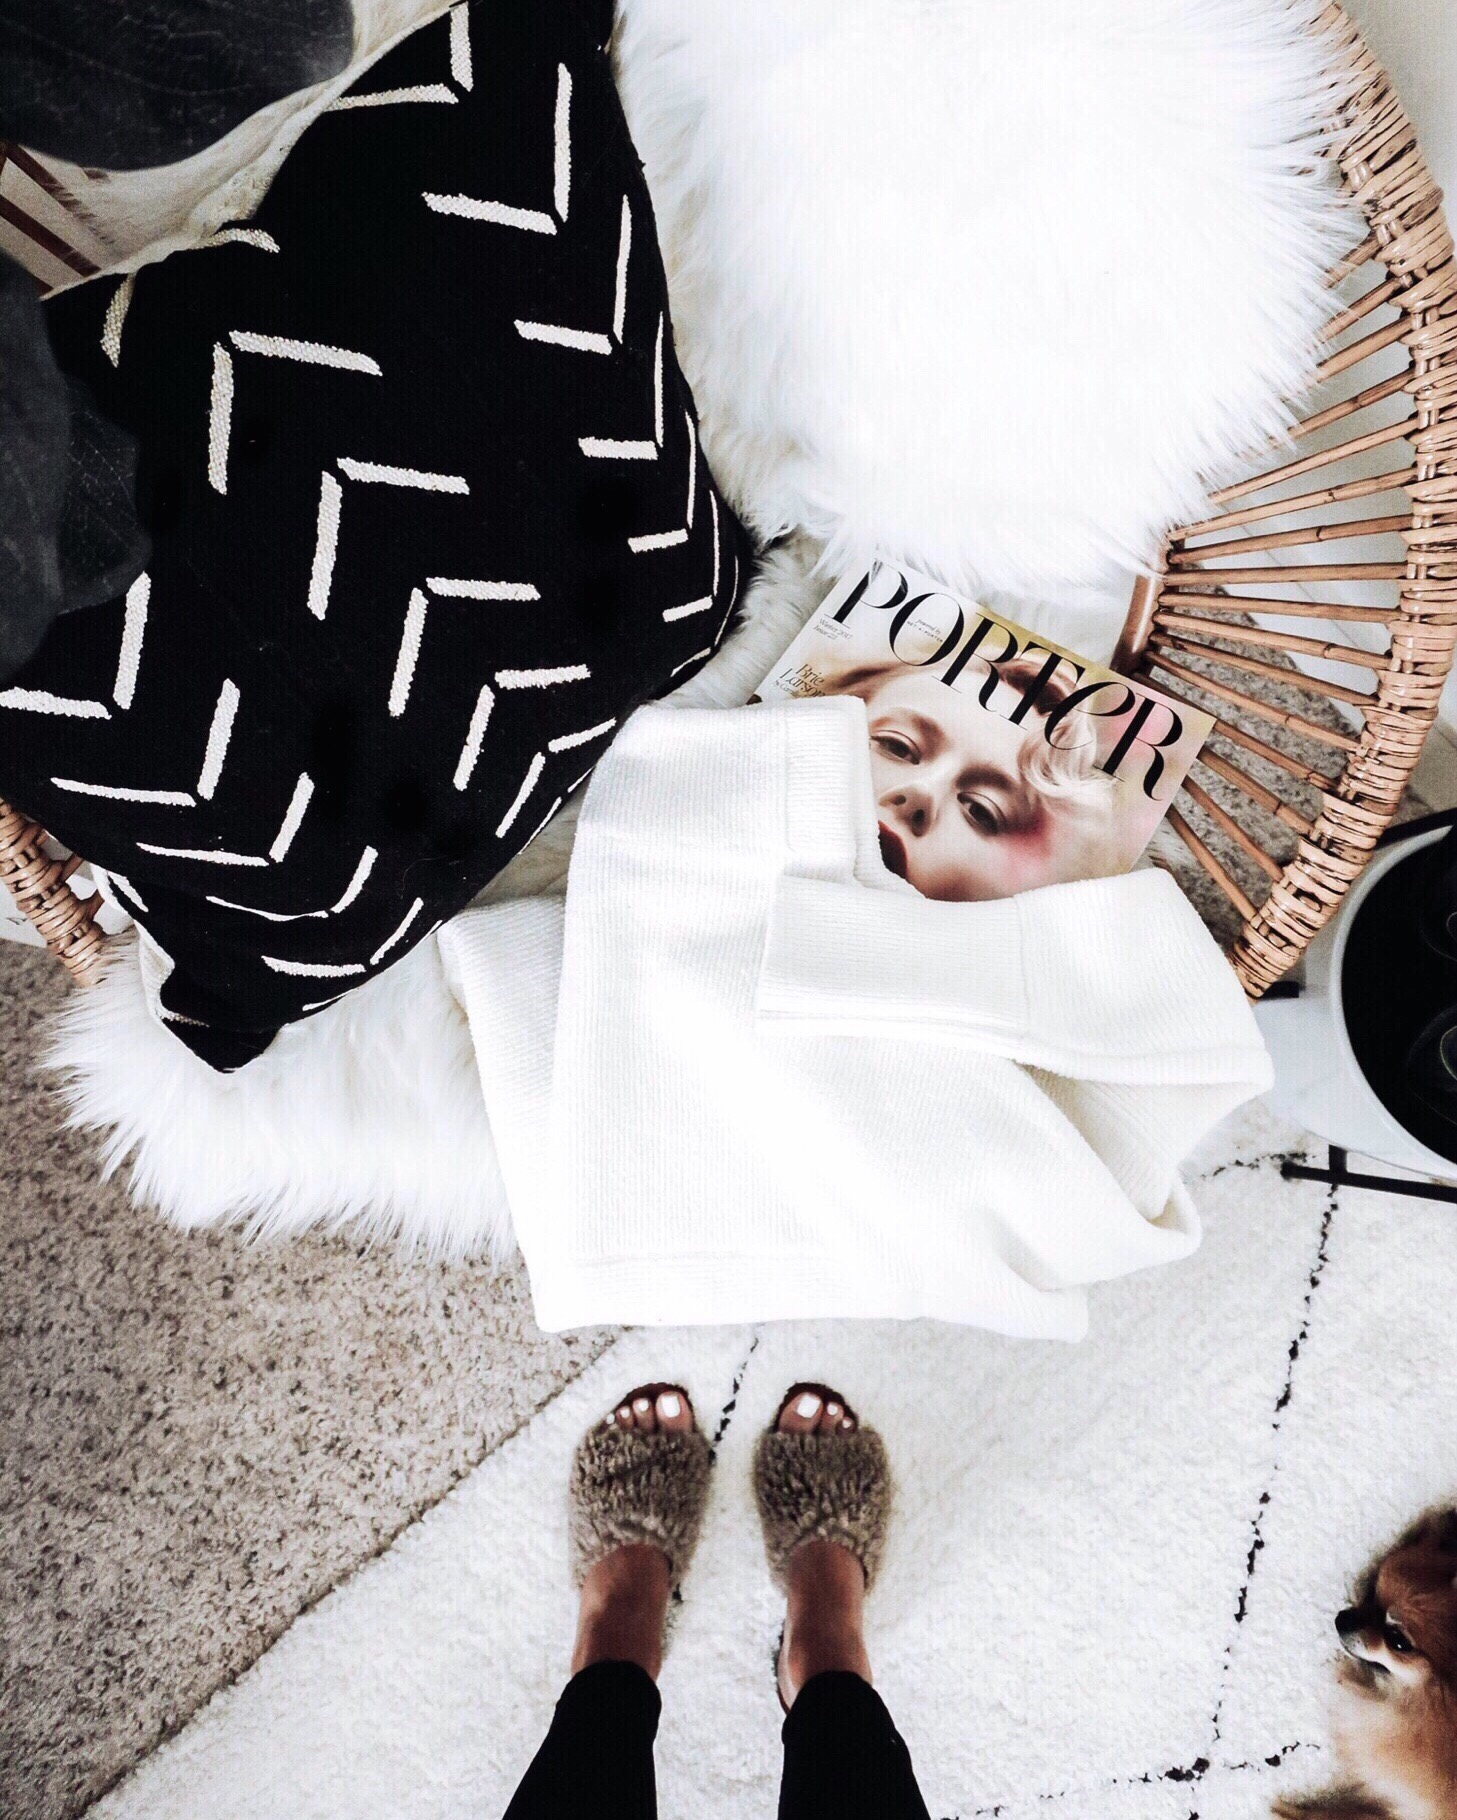 friday Feels   Click to shop  Stocking up on Cozy knits! This one by Free People is hands down my favorite buy so far this year! Runs large I ordered the xs and it still has lots of room!